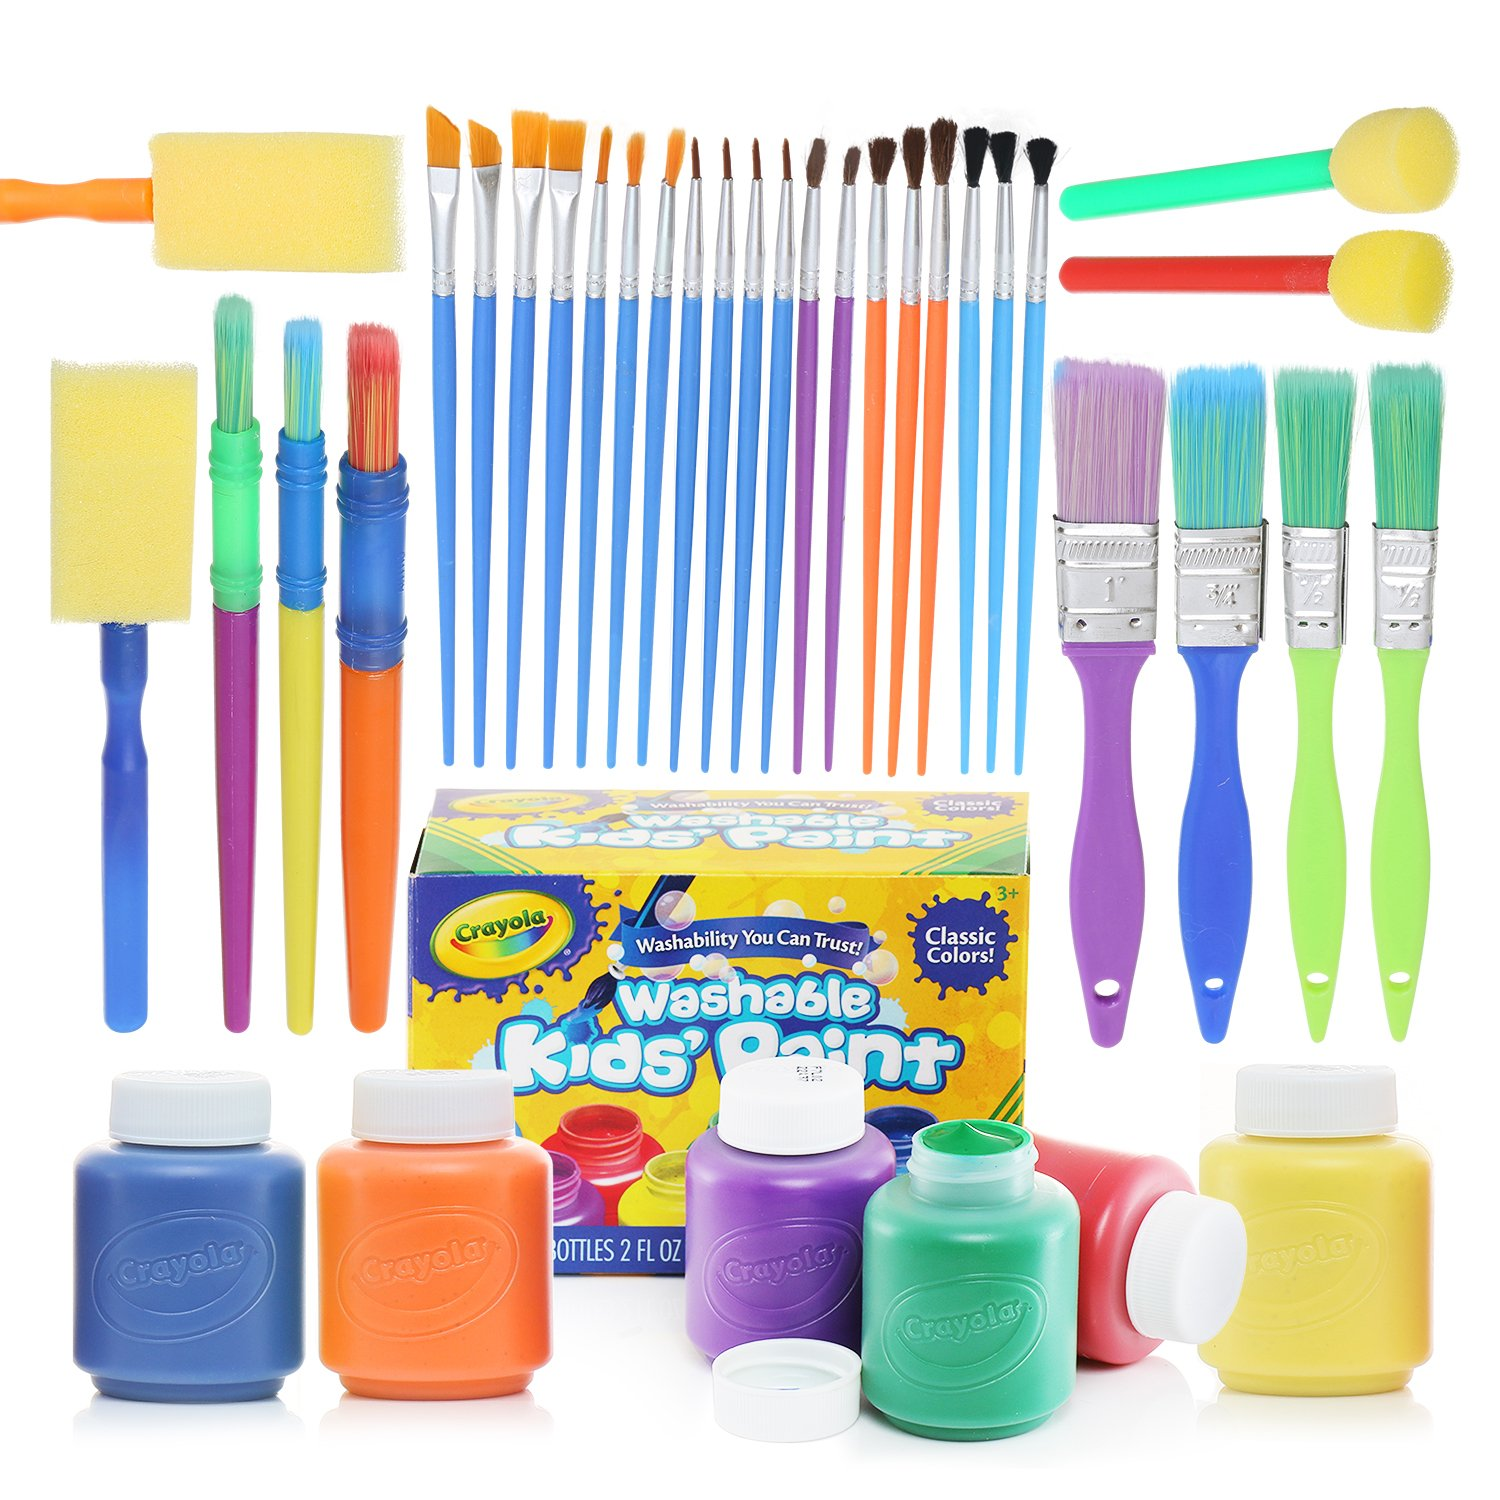 glokers Complete Set of 30 Paint Brushes and 6 Colors of Crayola Paints – Washable Kids Paints and Paintbrush Set - 2oz Assorted Bottles – Perfect for Kids Age 3+